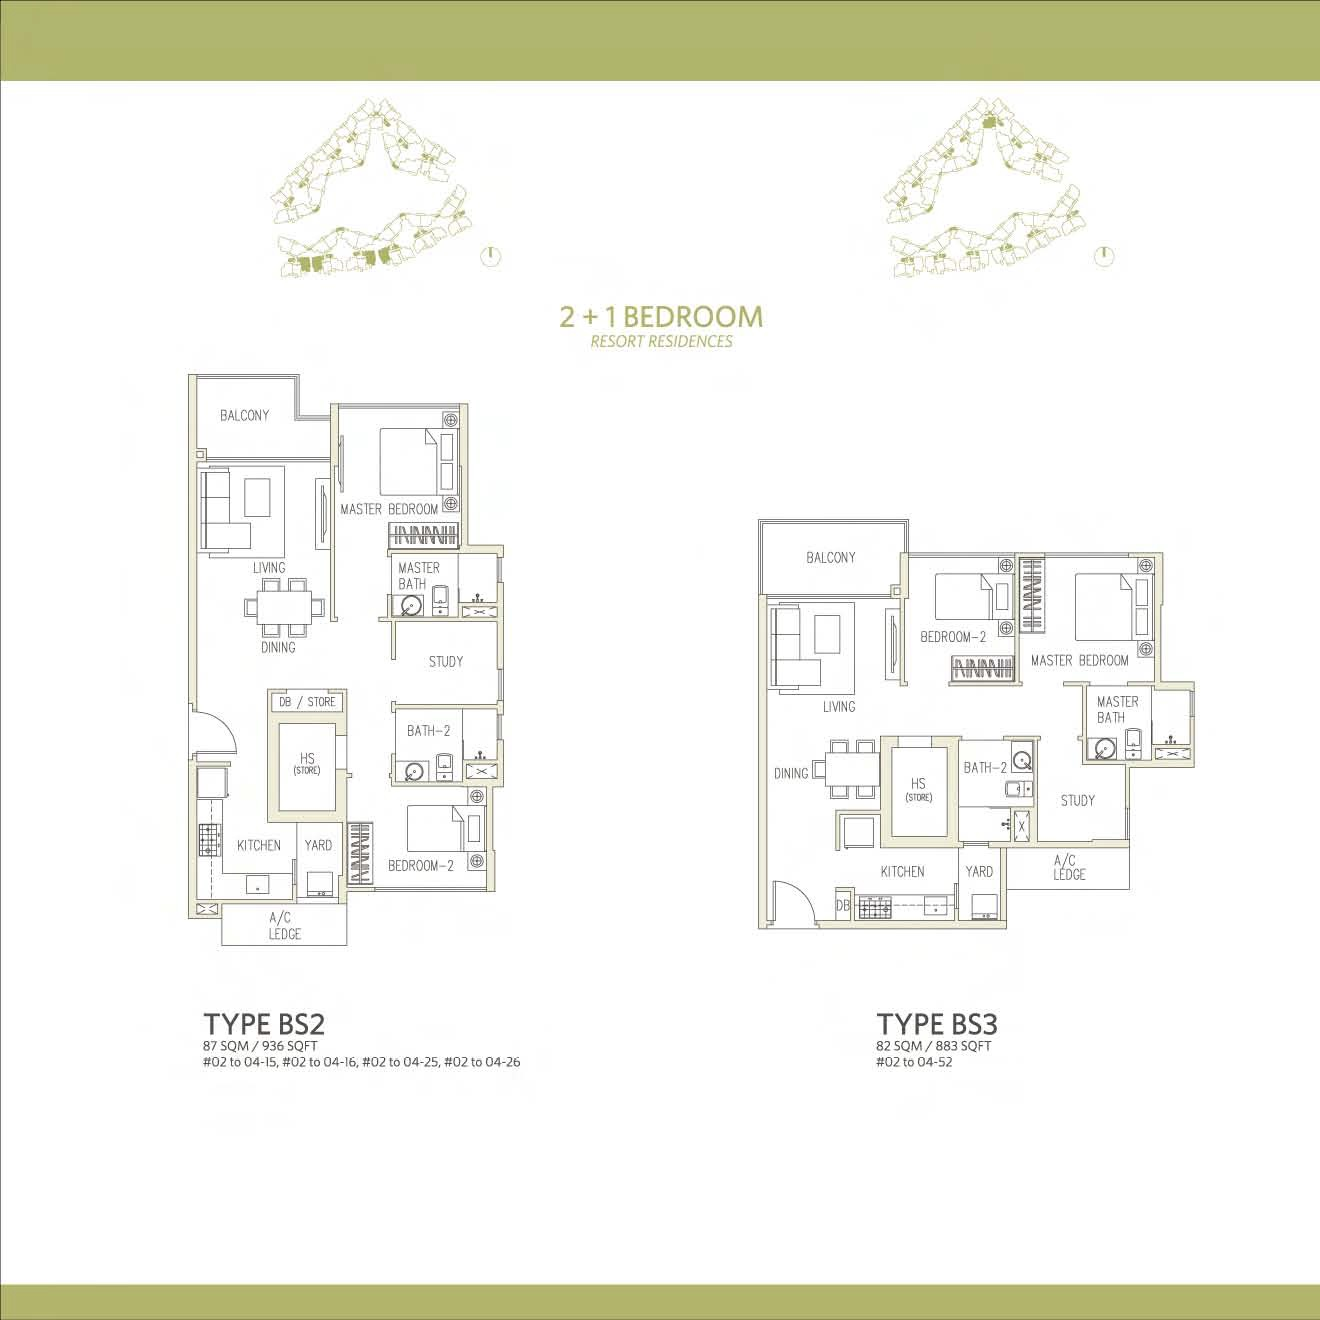 Canberra Residences 2 Bedroom + Study Floor Plans Type BS2 and BS3